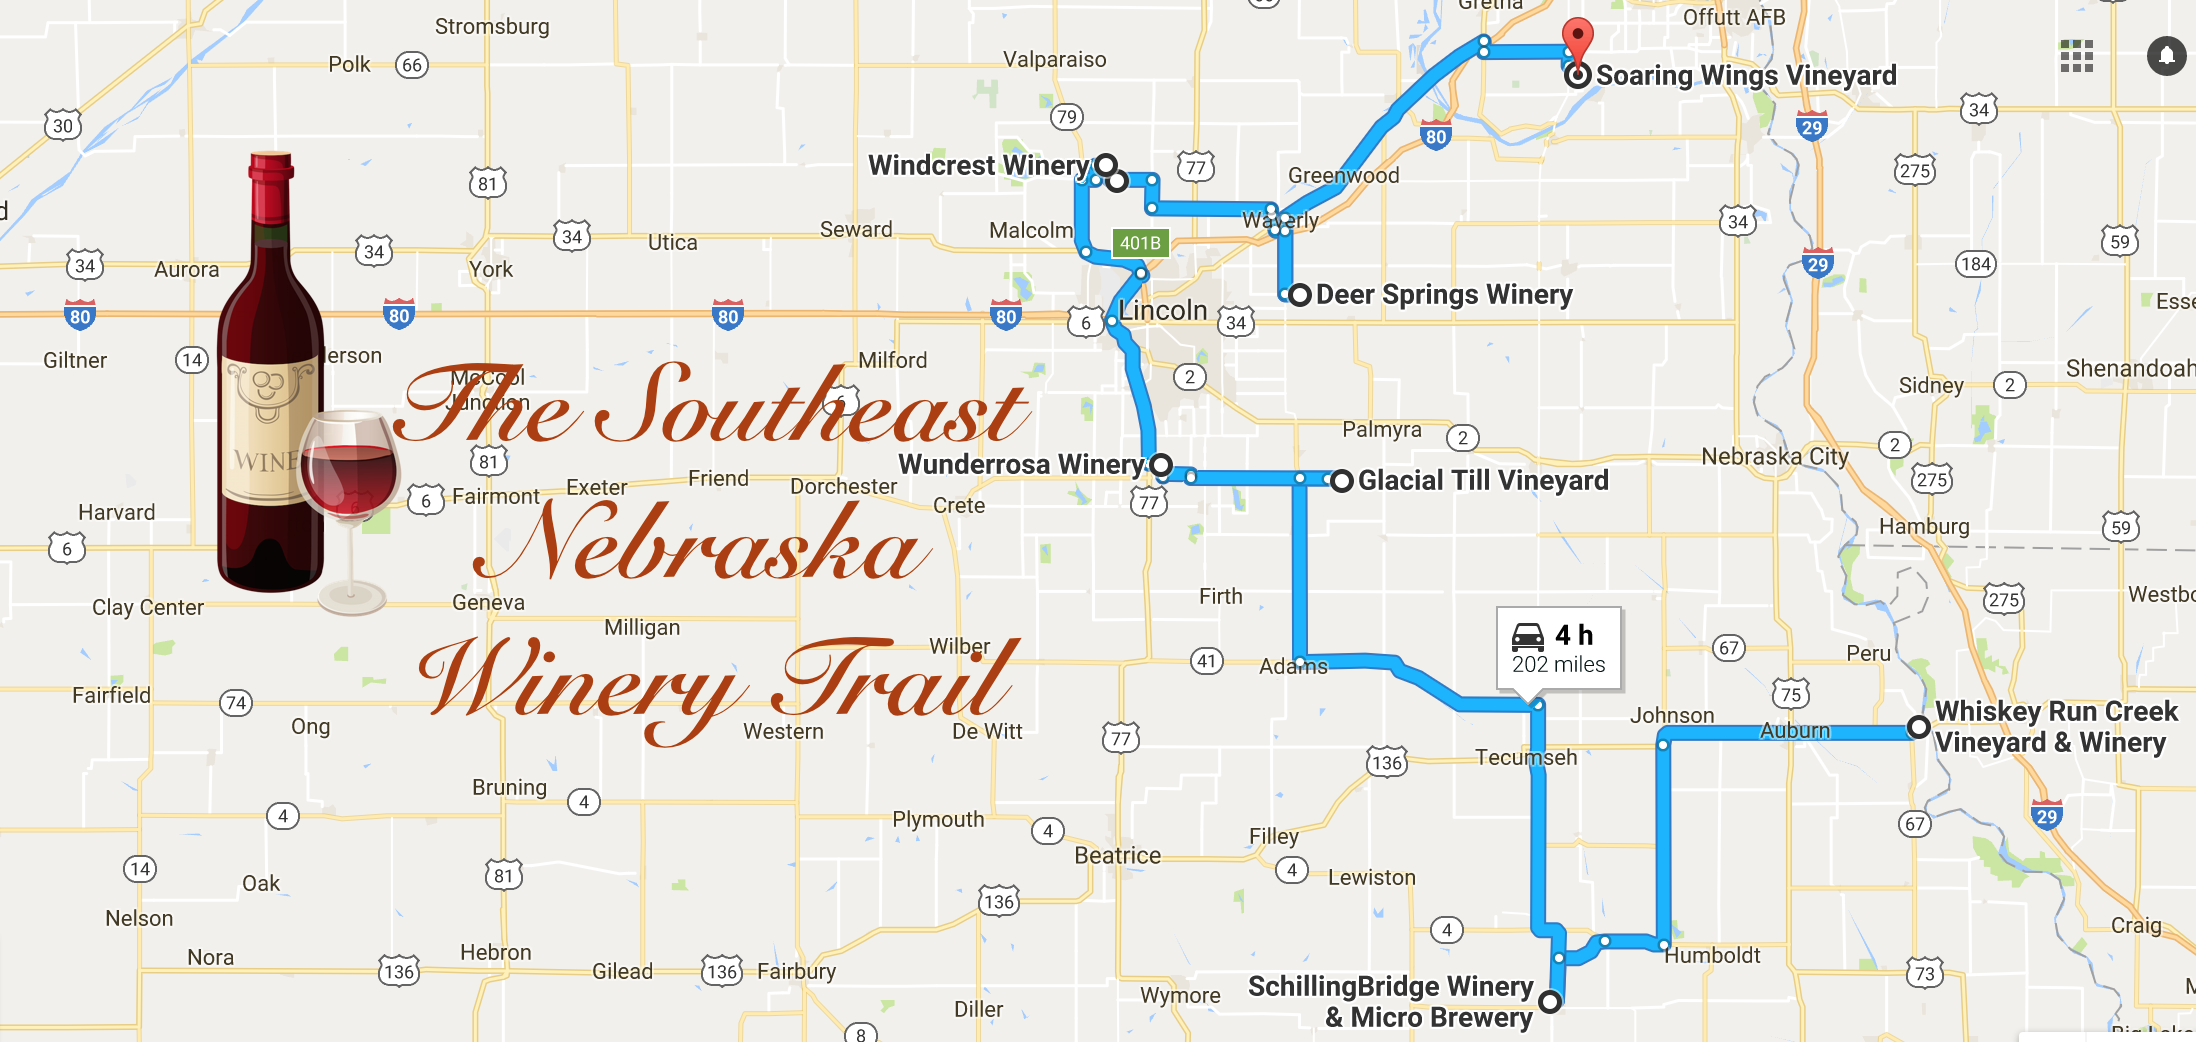 new york wine trail map with Southeast Wine Trail Ne on Downtown moreover Black 20widow 20movie 201987 in addition D12 Proof besides Thousand Islands New York Map furthermore Travel Services.